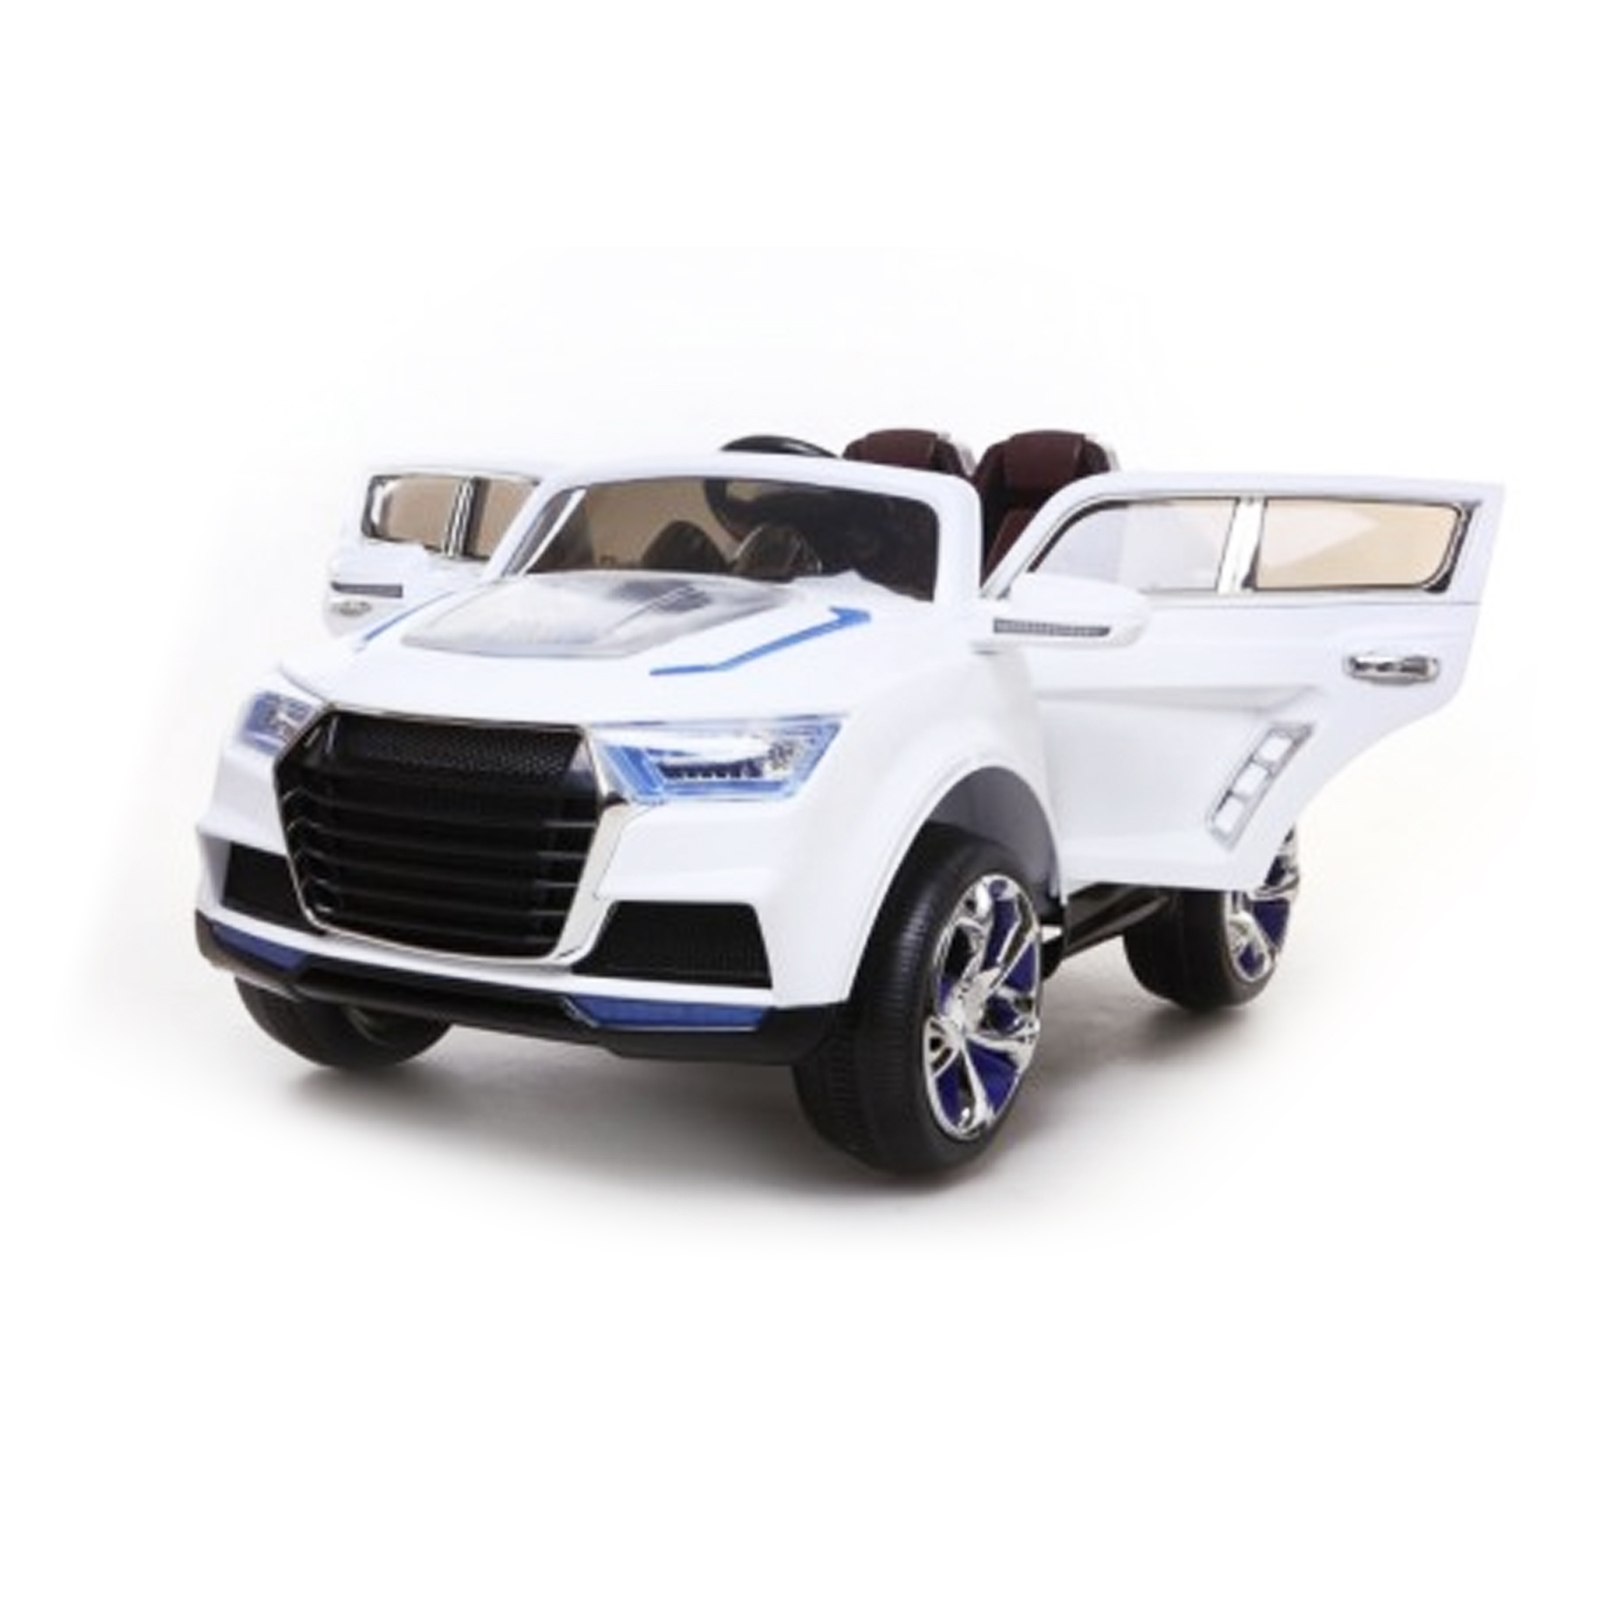 Q-731 SUV 12V Kids Battery Powered Ride On Car in White